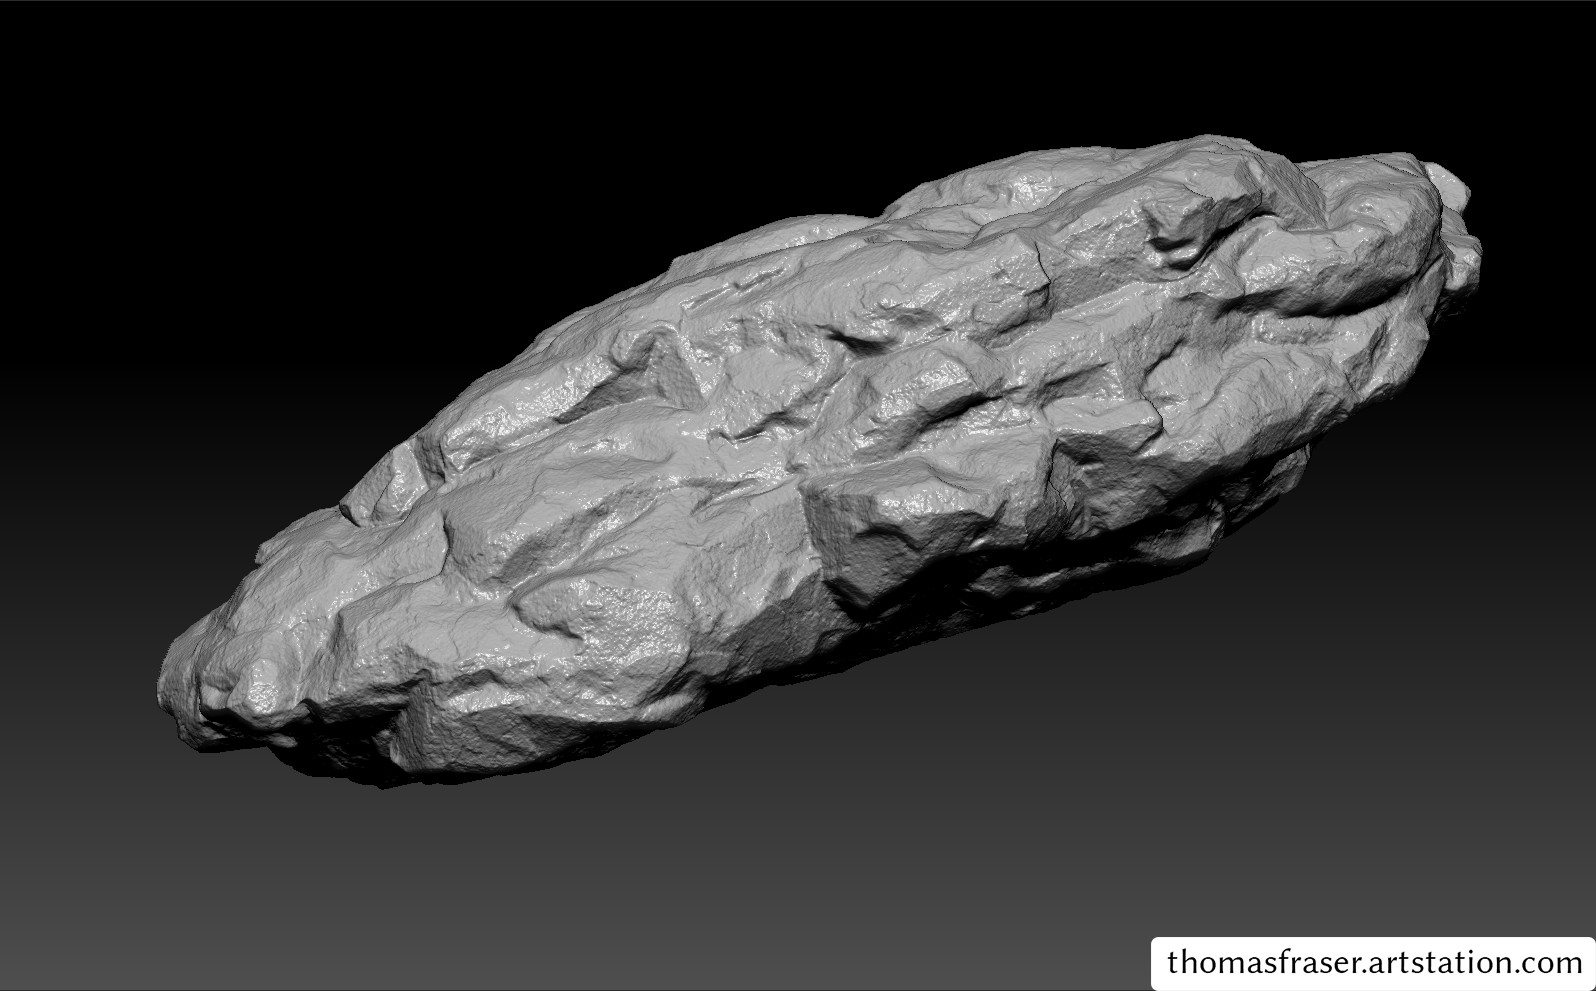 ZBrush high poly model for the dark wet rock. I went through 3 or 4 different iterations of the rock until I had something I was happy with.